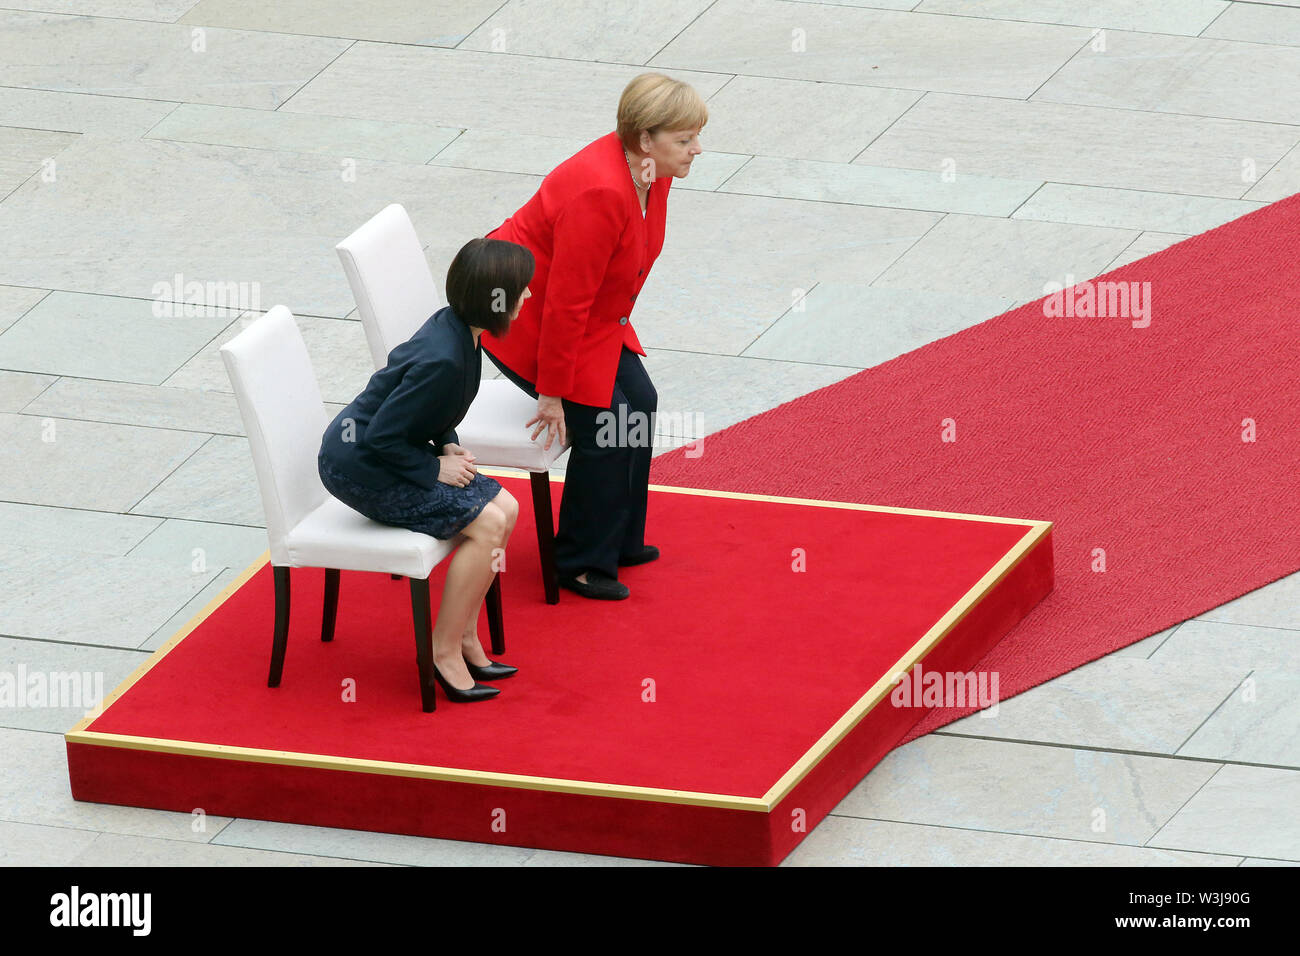 Berlin, Germany. 16th July, 2019. Federal Chancellor Angela Merkel (CDU, r) receives Moldovan Prime Minister Maia Sandu in the Federal Chancellery with military honours and follows the national anthems playing while sitting with her. After several tremors during public appearances such as this, Merkel performed the ceremony for the first time last week, partly sitting down. Credit: Britta Pedersen/dpa-Zentralbild/dpa/Alamy Live News - Stock Image